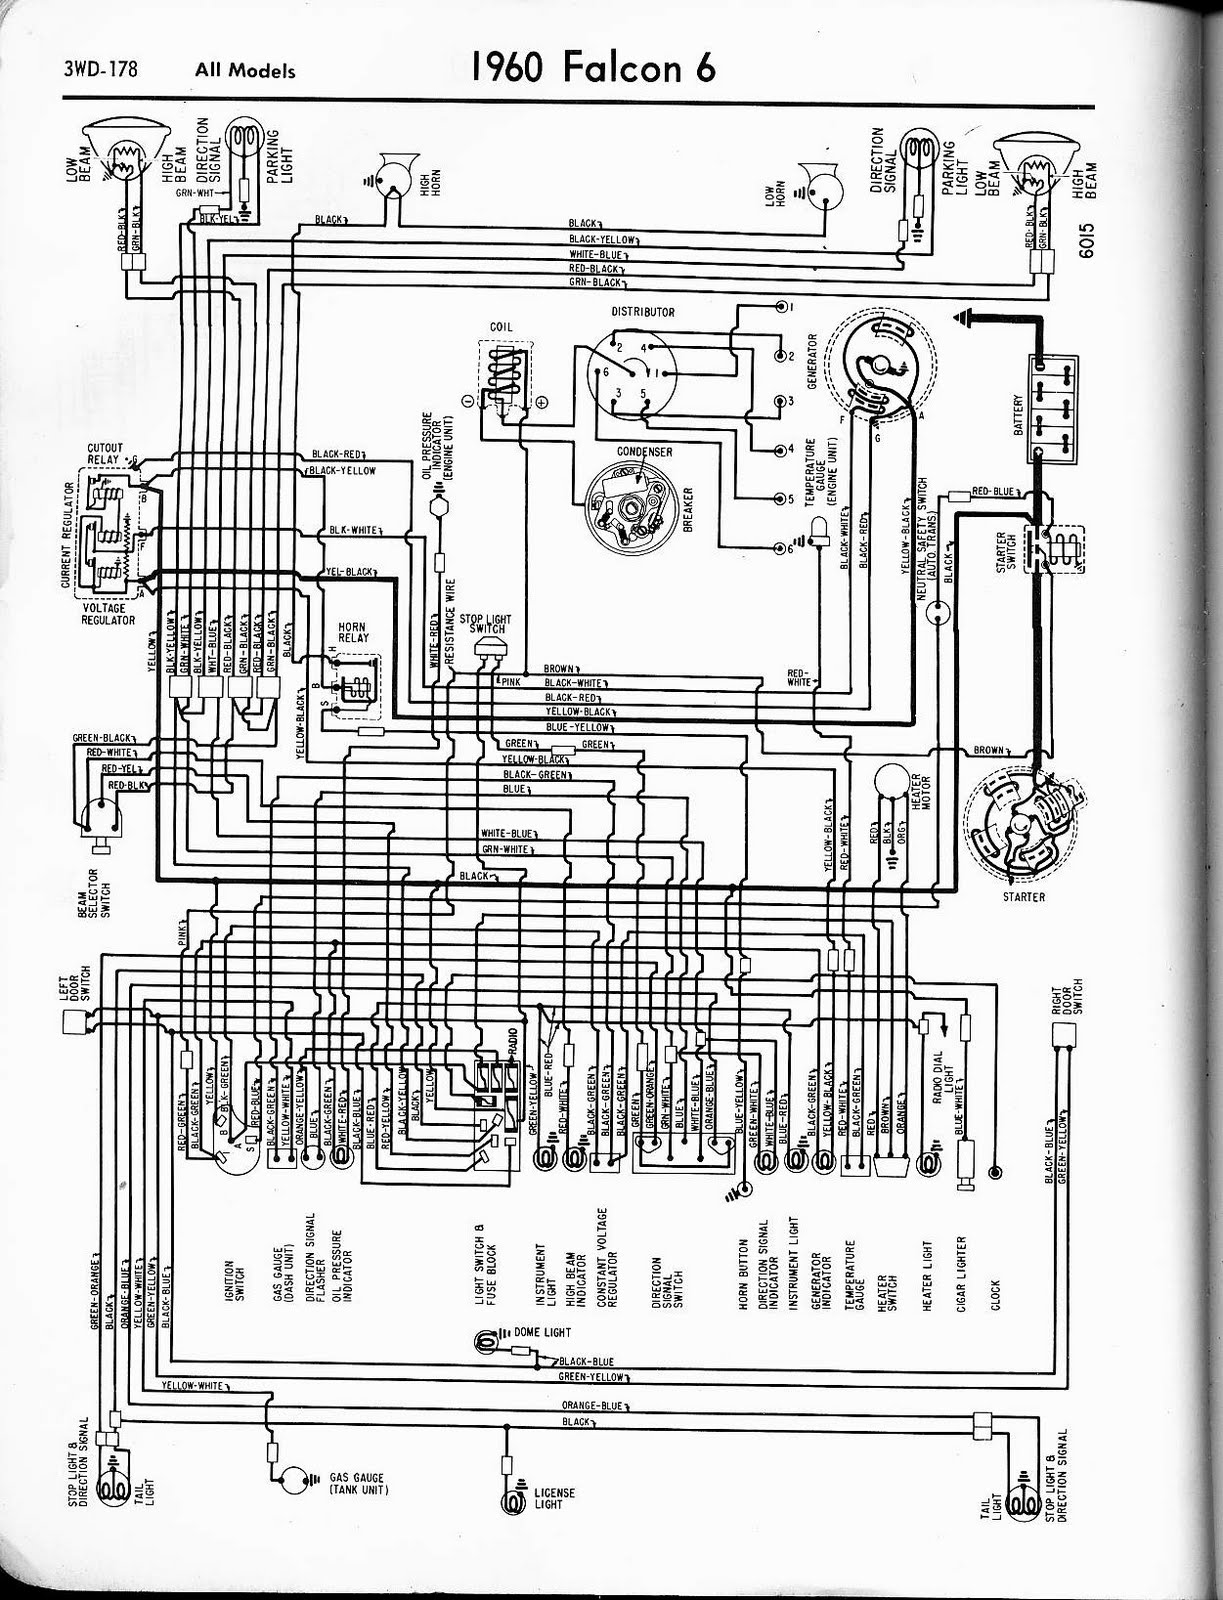 75 dodge wiring diagram free download wiring diagram schematic